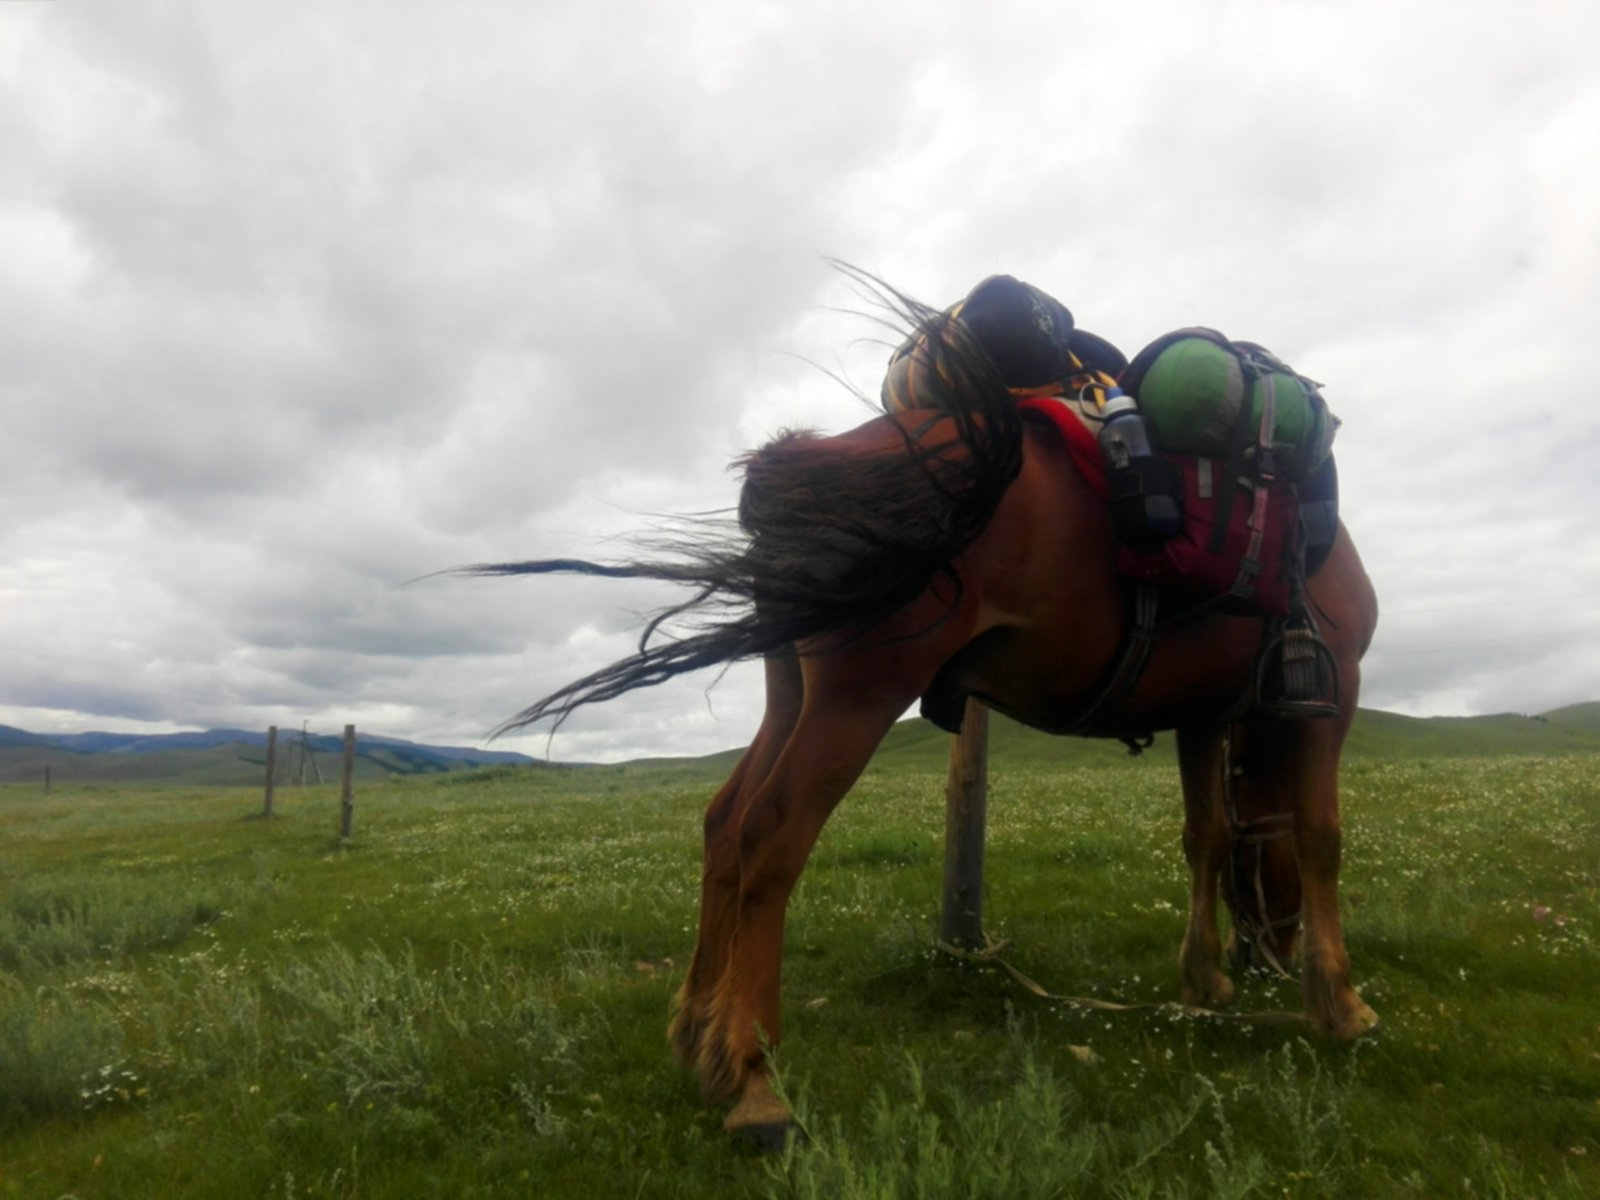 img_20160710_214639-jpg.31997_Polvo the Mongolian Horse_Furry Nomads_Squat the Planet_3:00 AM